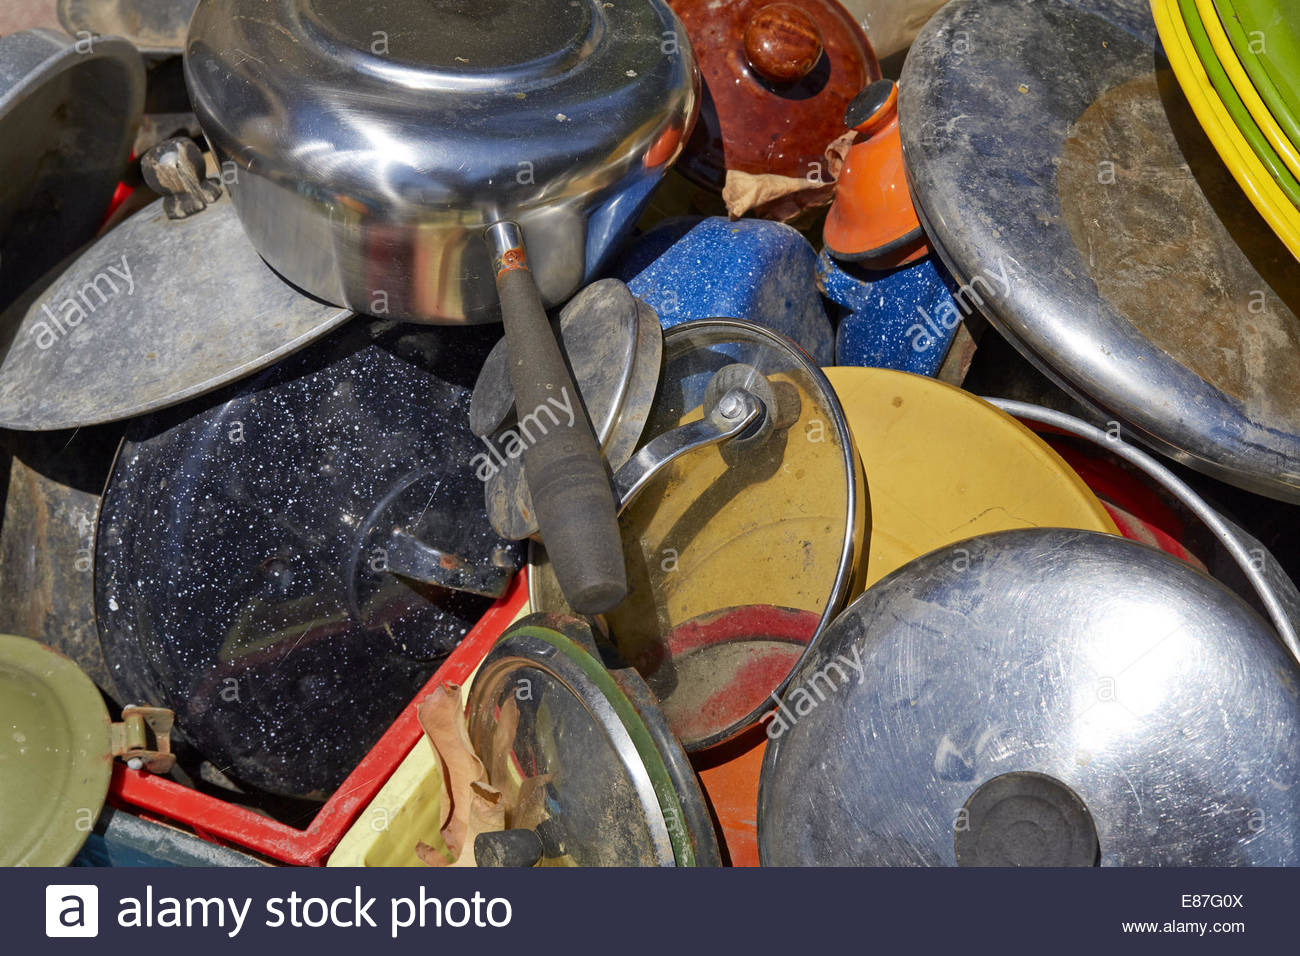 Dusty, Rusty, discarded pots and pans, plates, dishes and house wares - Stock Image